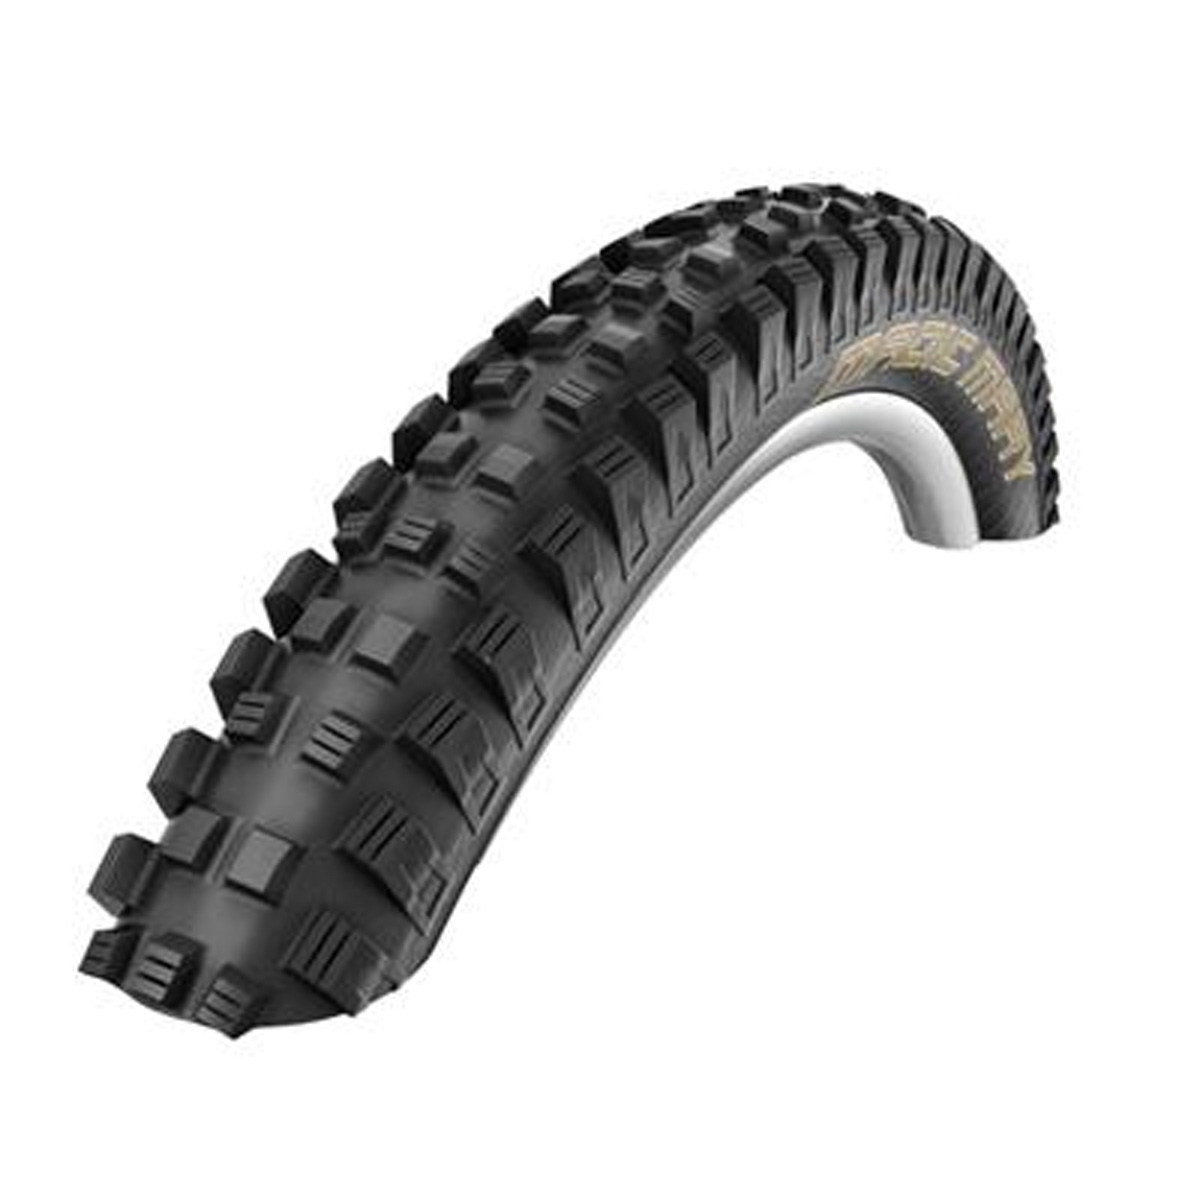 Schwalbe Magic Mary HS 447 BikePark Addix Mountain Bicycle Tire - 27.5 in Wire Bead